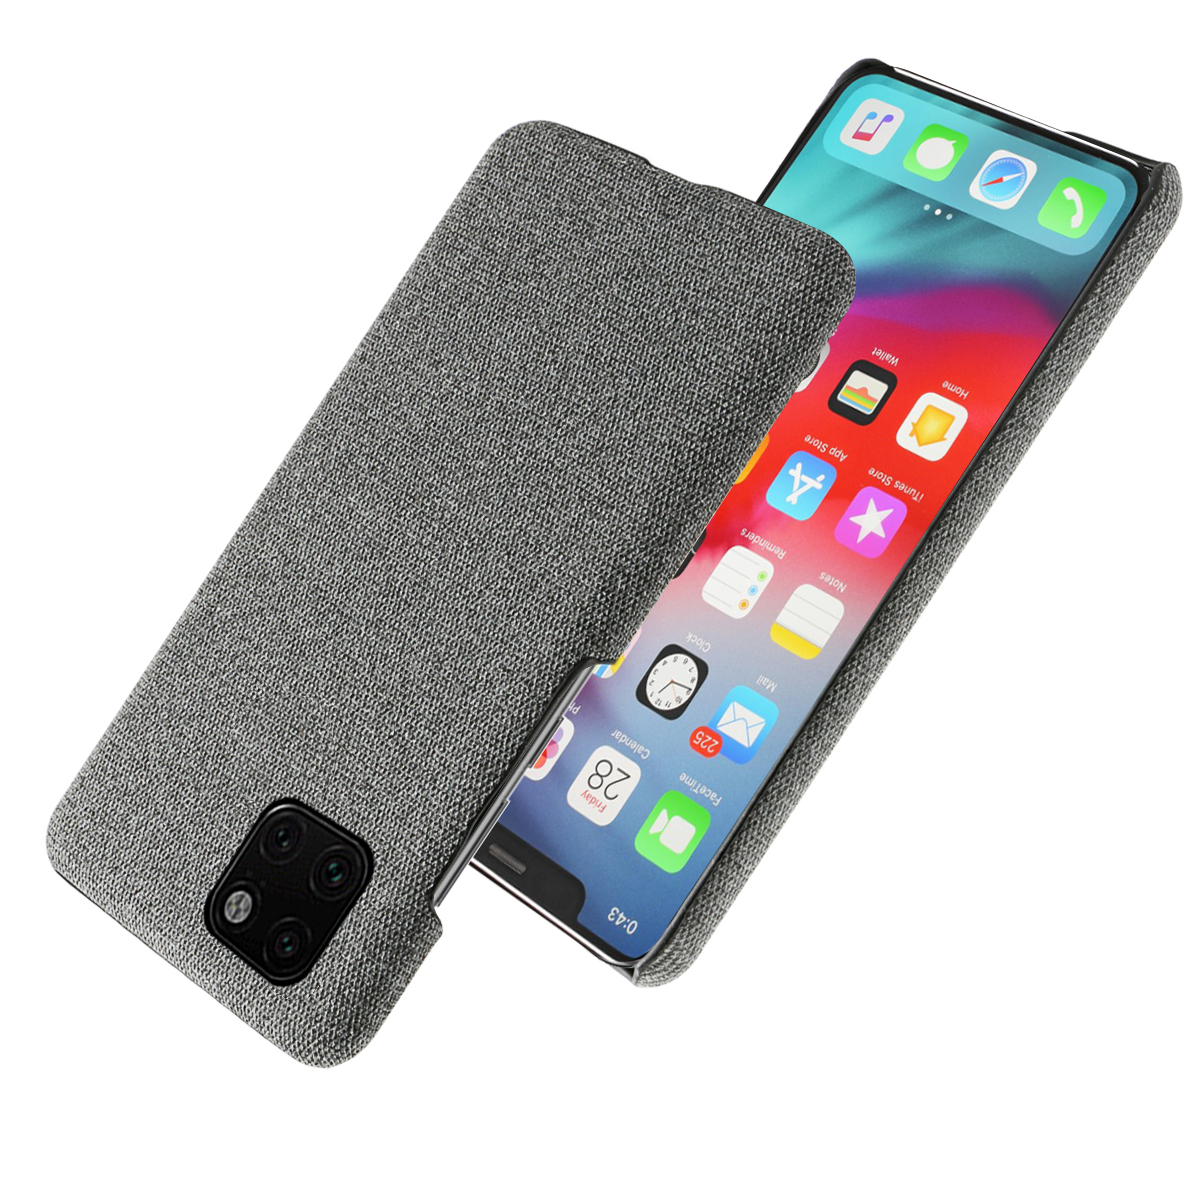 for iPhone 11 pro Max 2019 Case Slim Back Hard PC Woven Shockproof Cloth Cover for iPhone X XS Max XR 5 5S SE Case Luxury